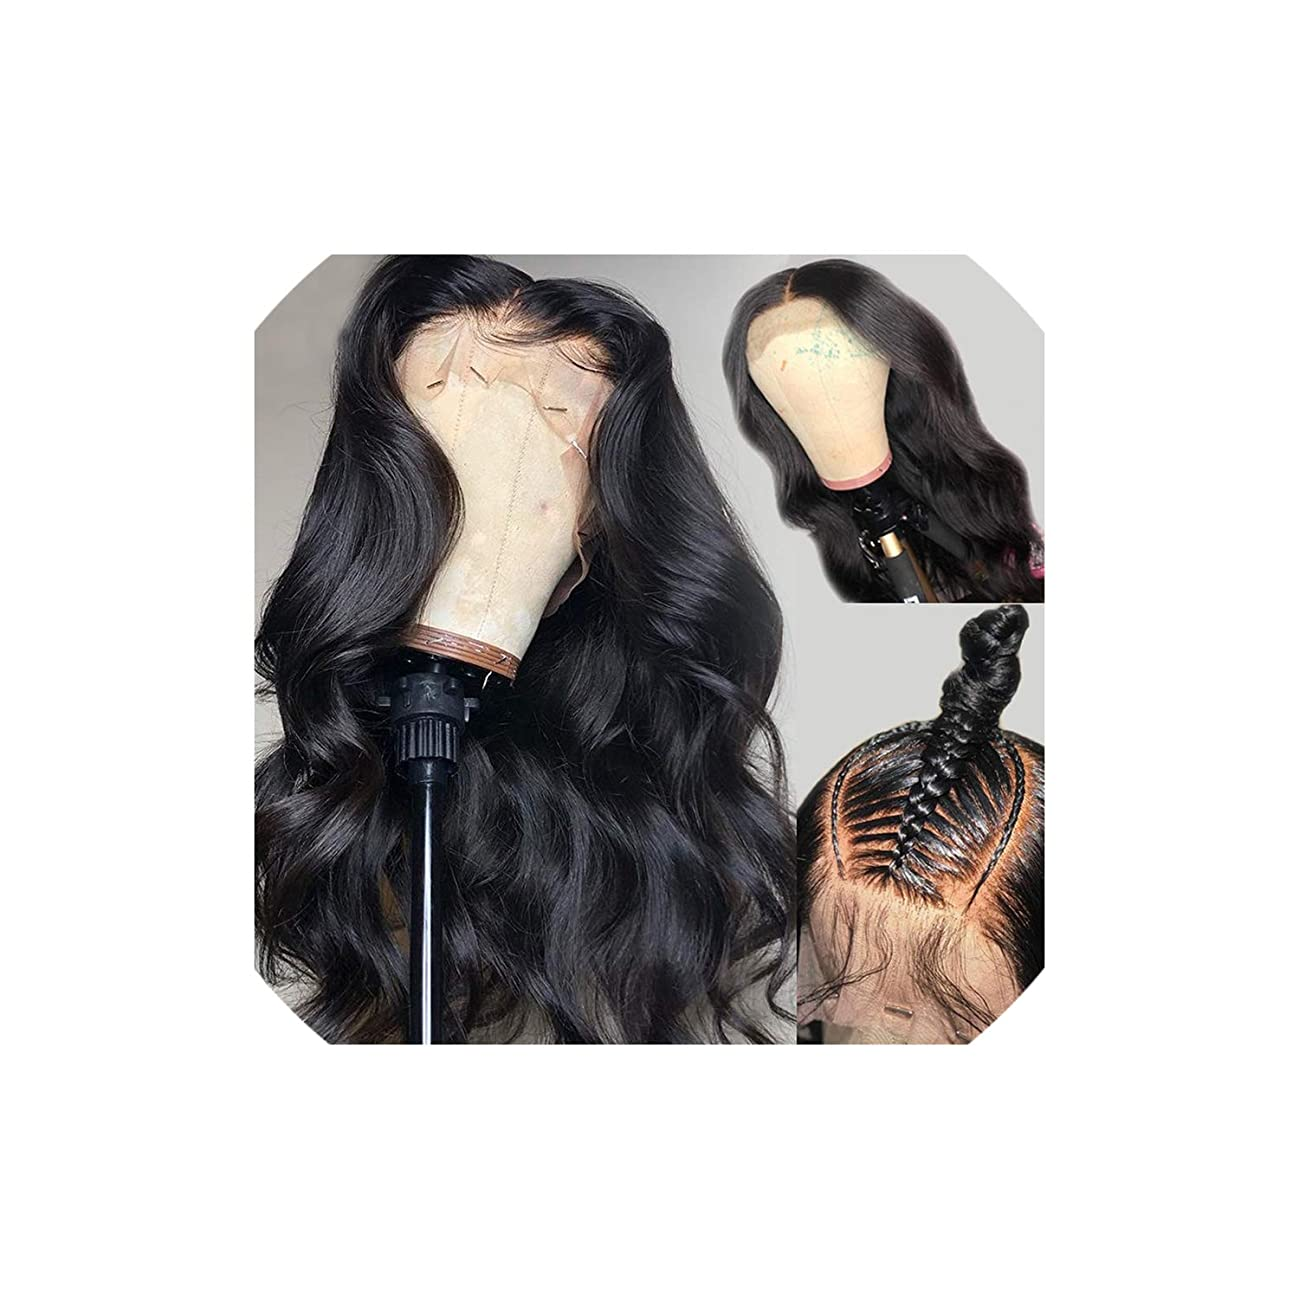 Body Wave Wig 13x6 Deep Part Lace Front Human Hair Wigs for Black Women Full Ends PrePlucked with Baby Hair Atina,12inches,130%